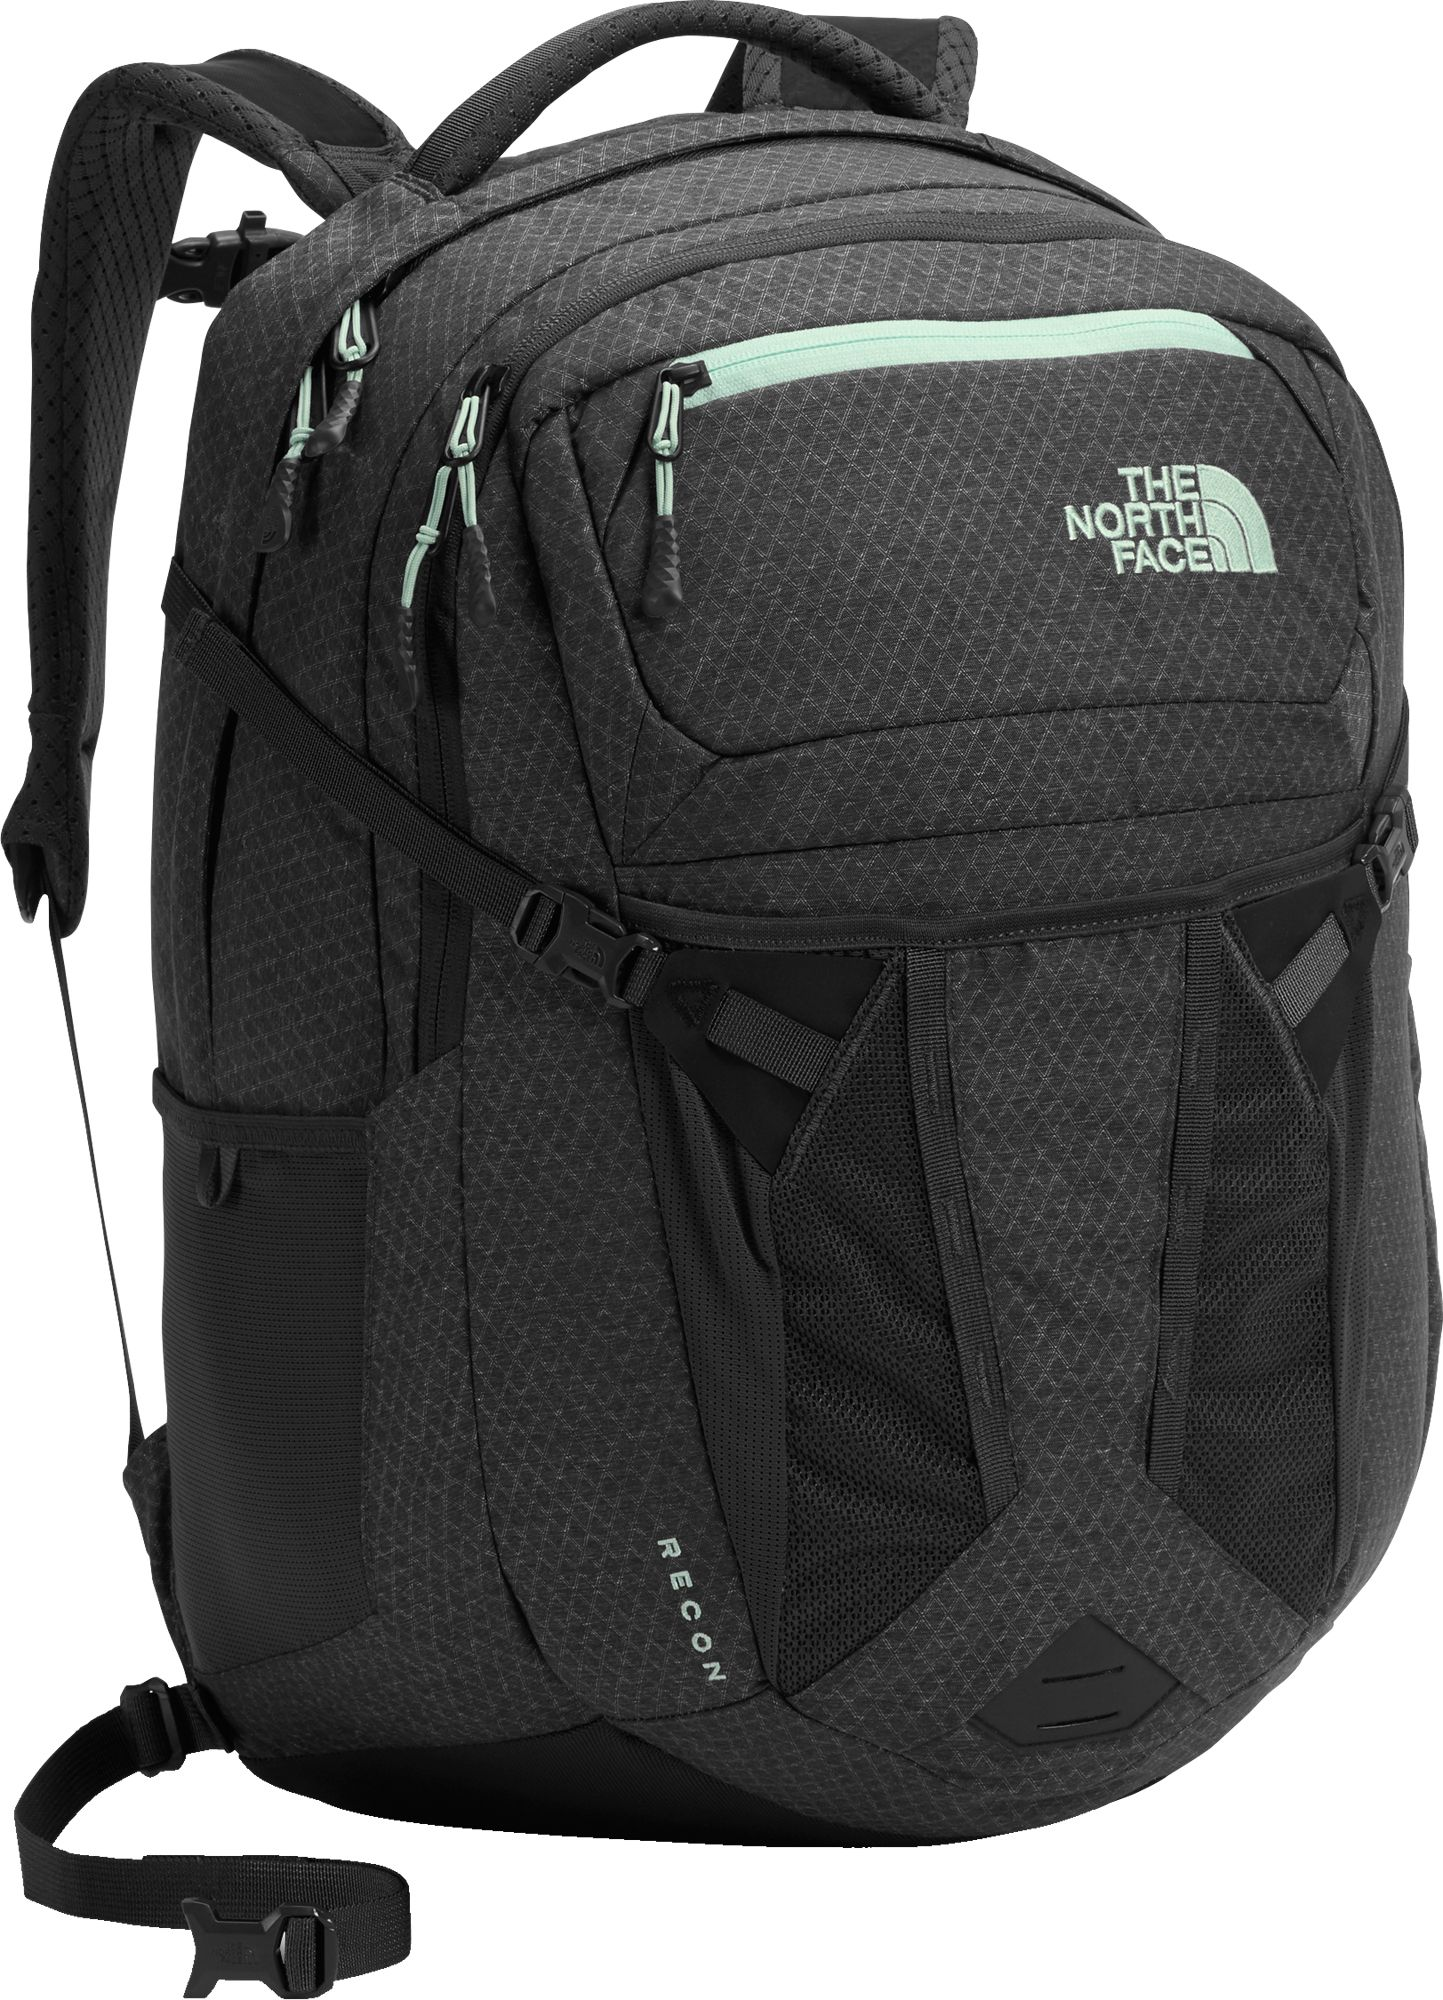 Jansport Backpack Walmart